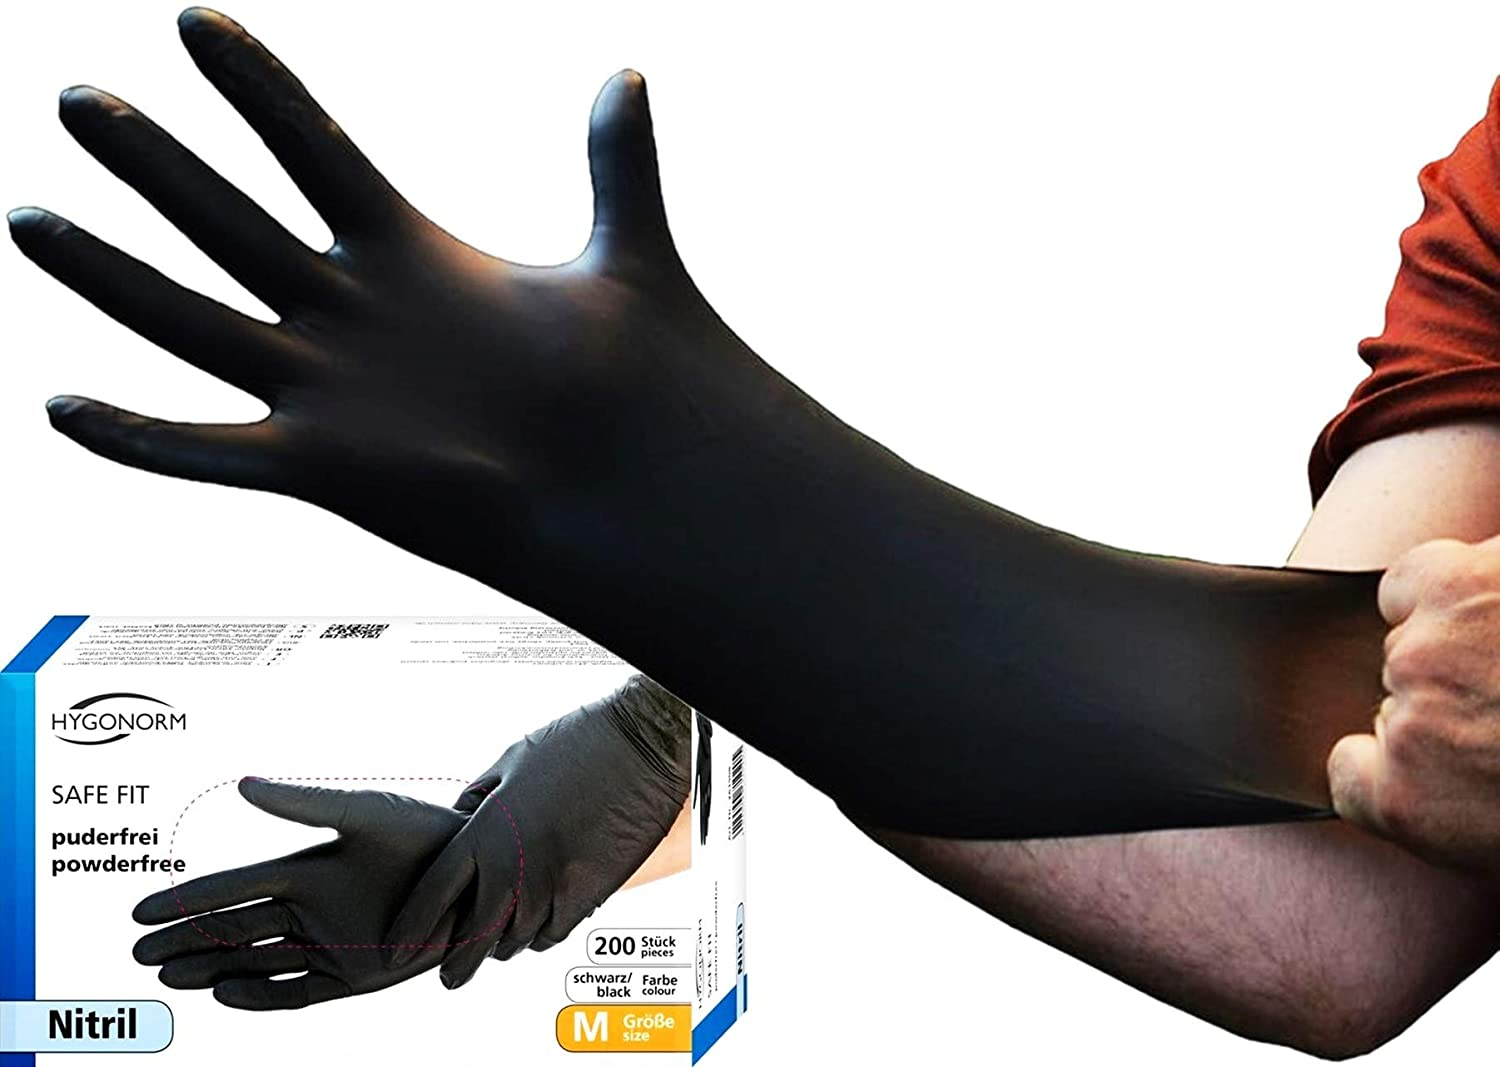 6-7 Powder Free Latex Free AQL 1.5 Light Work Cleaning Gardening Medical Grade Tattooist Personal Care Painting Black Light Duty Safe Fit Nitrile Gloves Small 200x Disposable Gloves